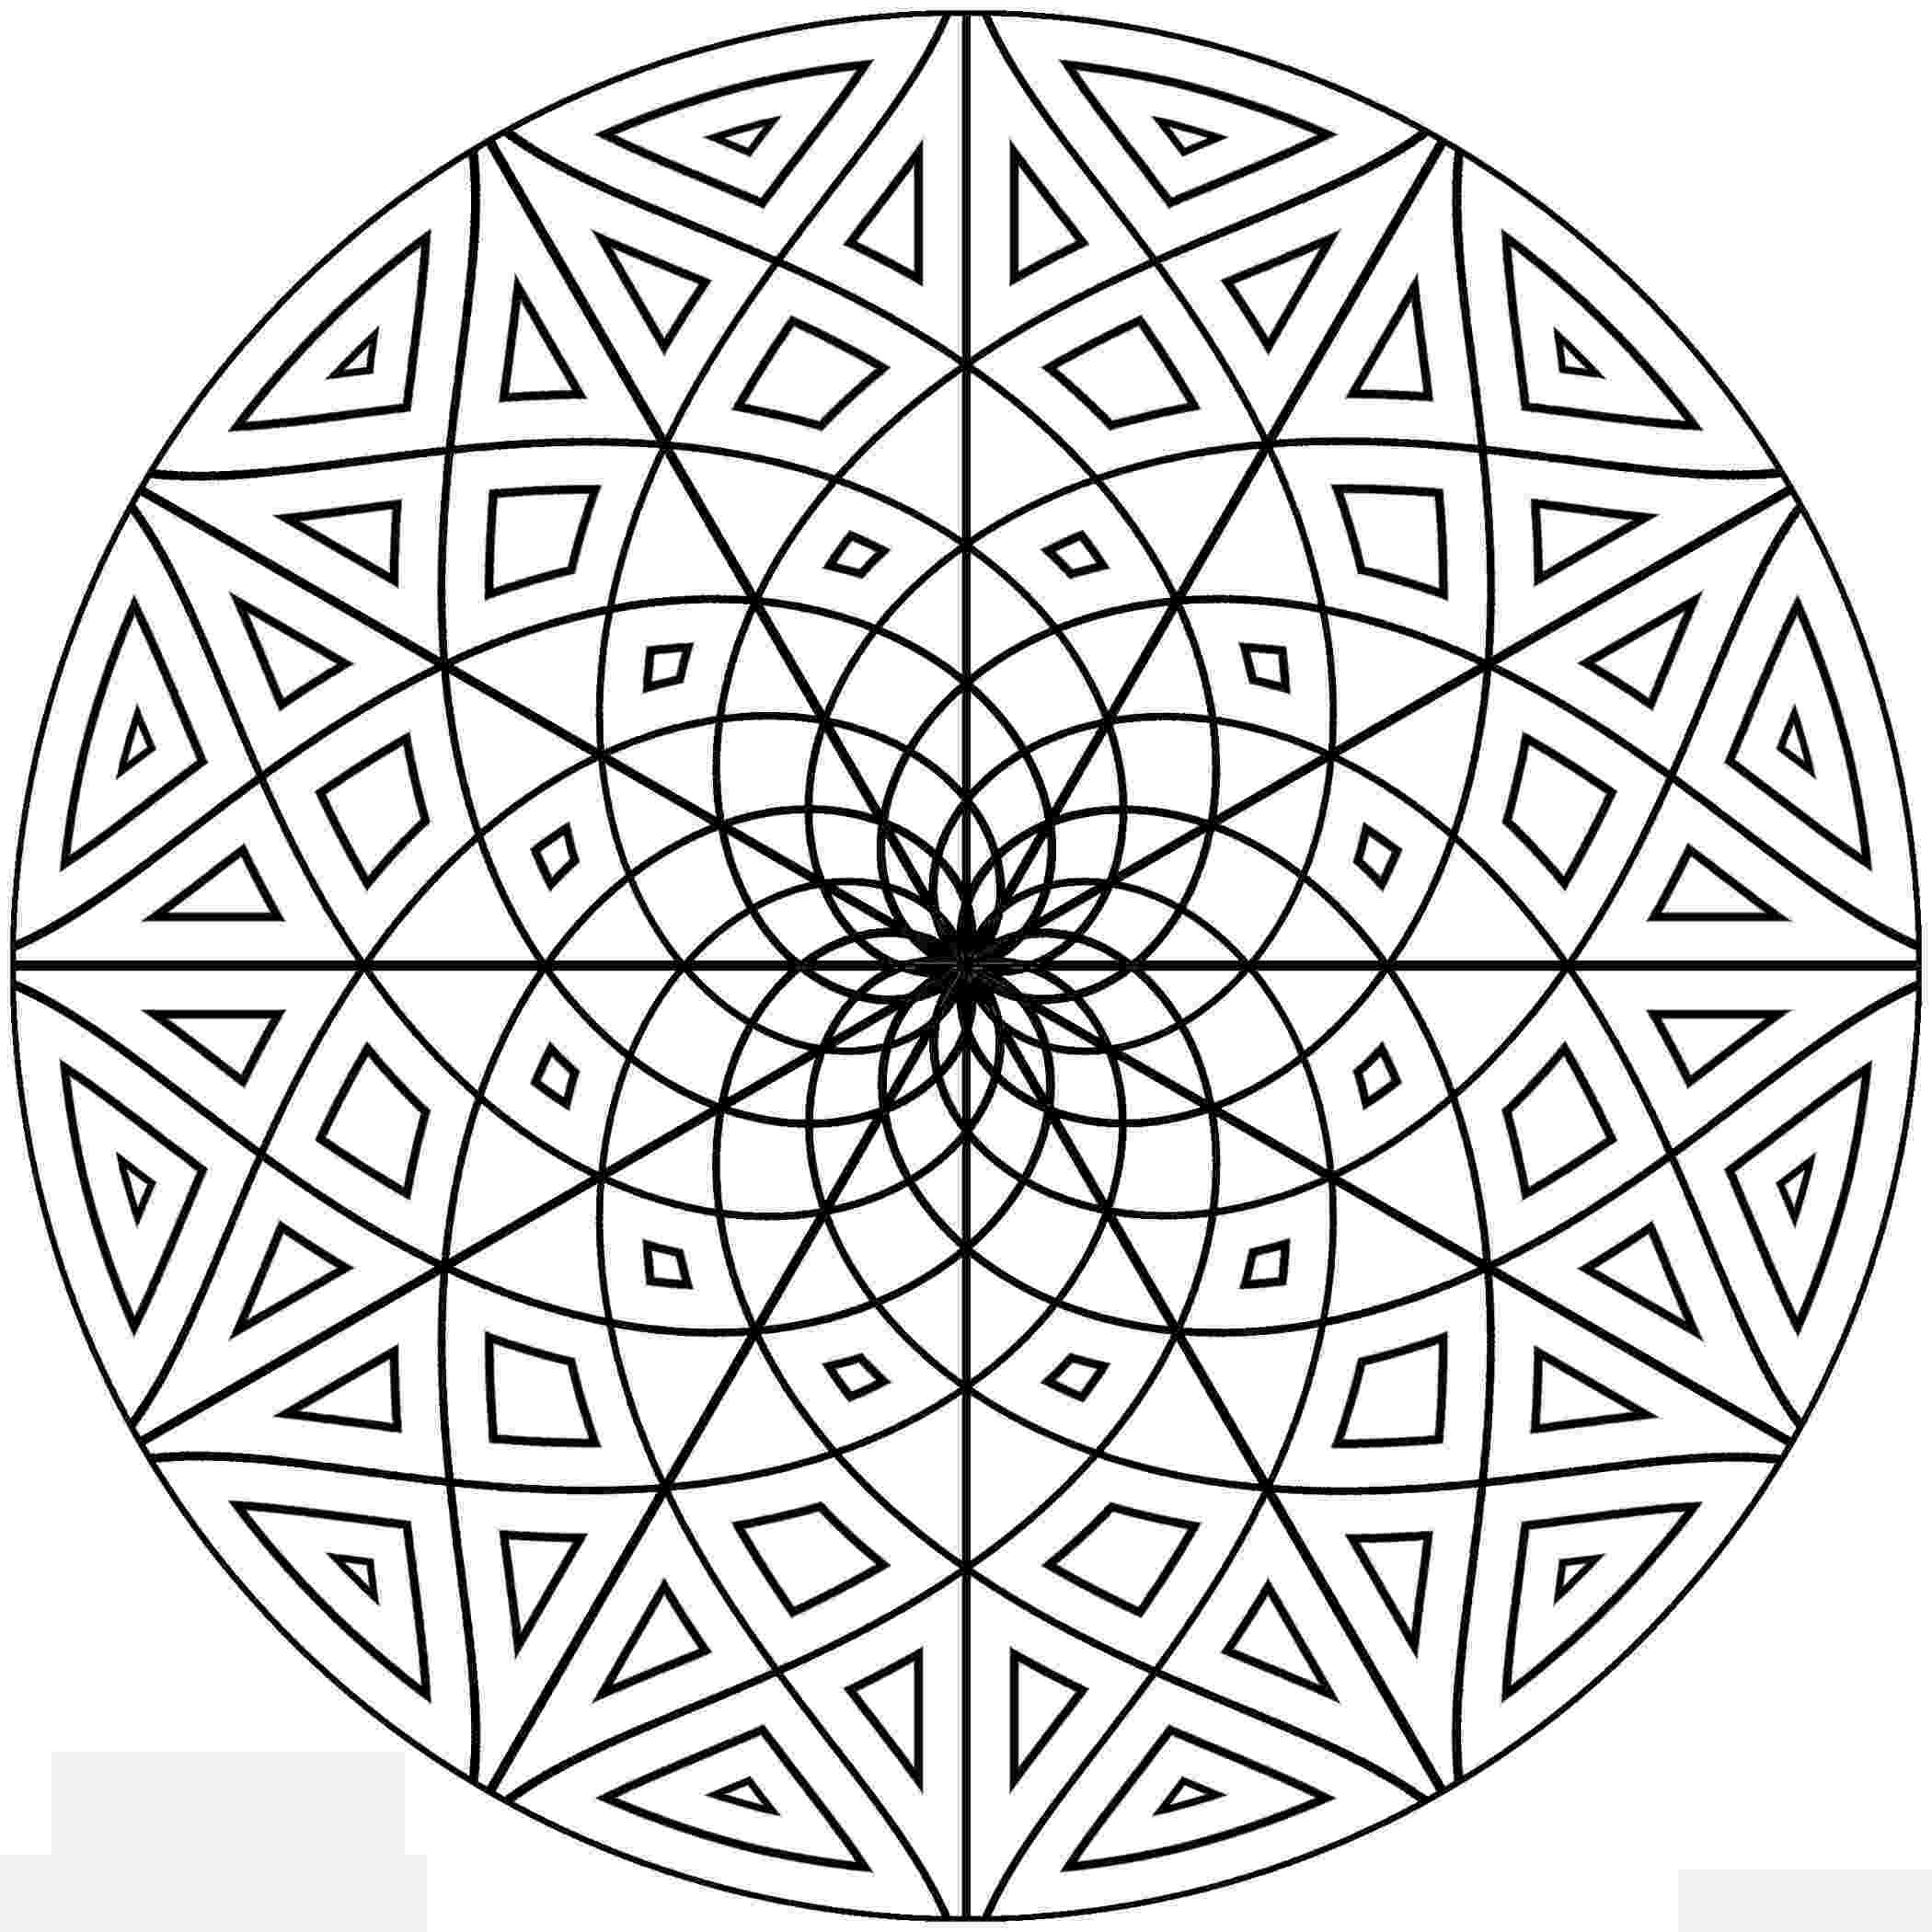 printable colouring patterns free printable geometric coloring pages for kids patterns printable colouring